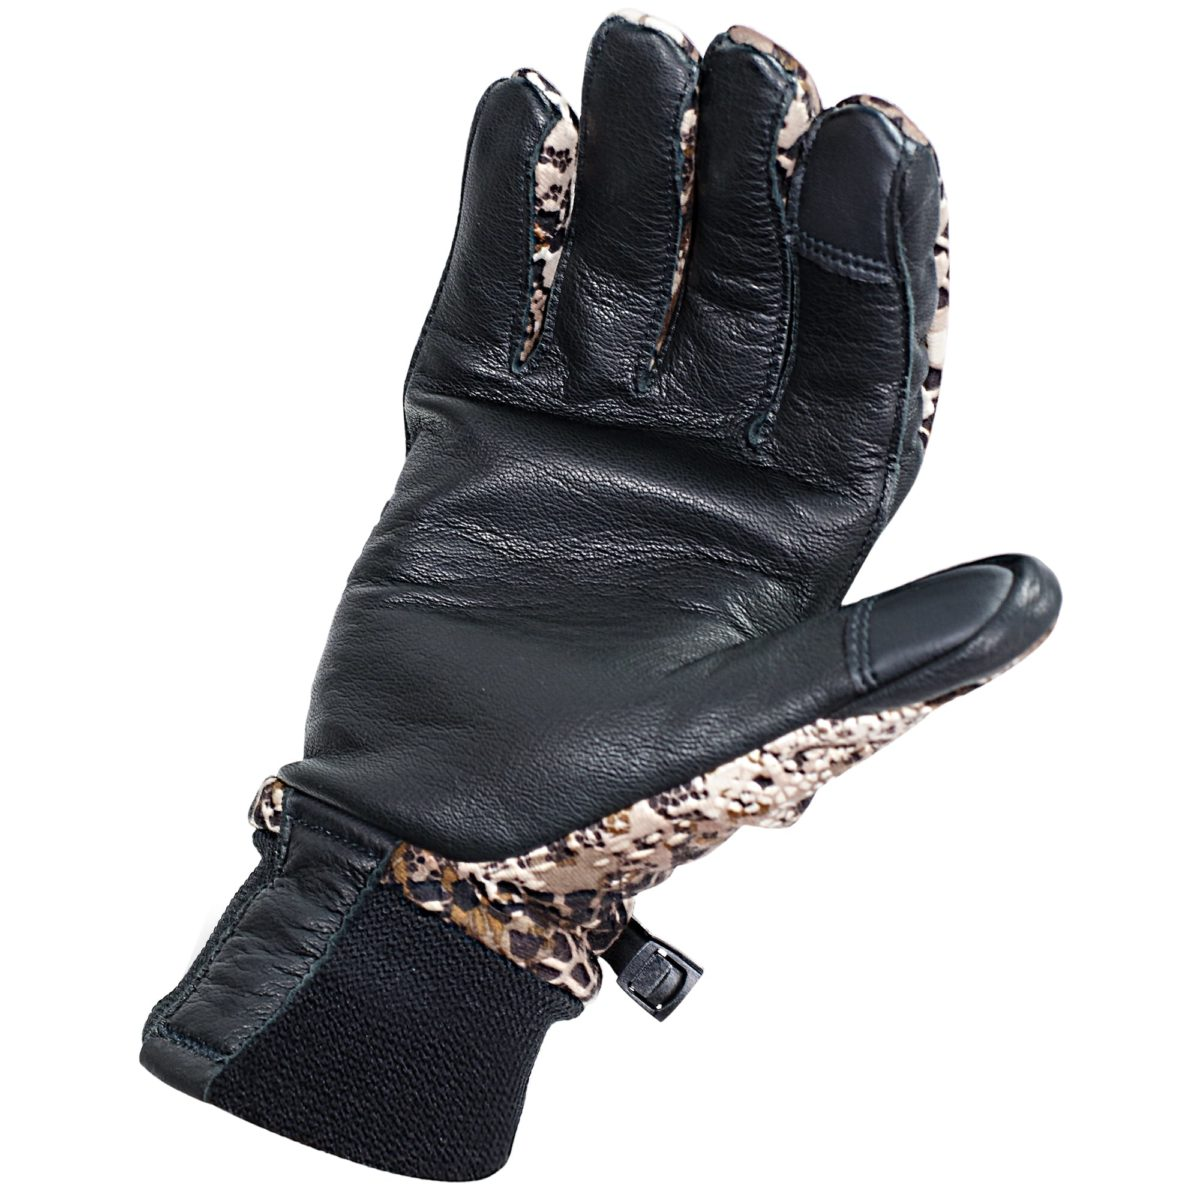 Badlands Hybrid Camo Gloves